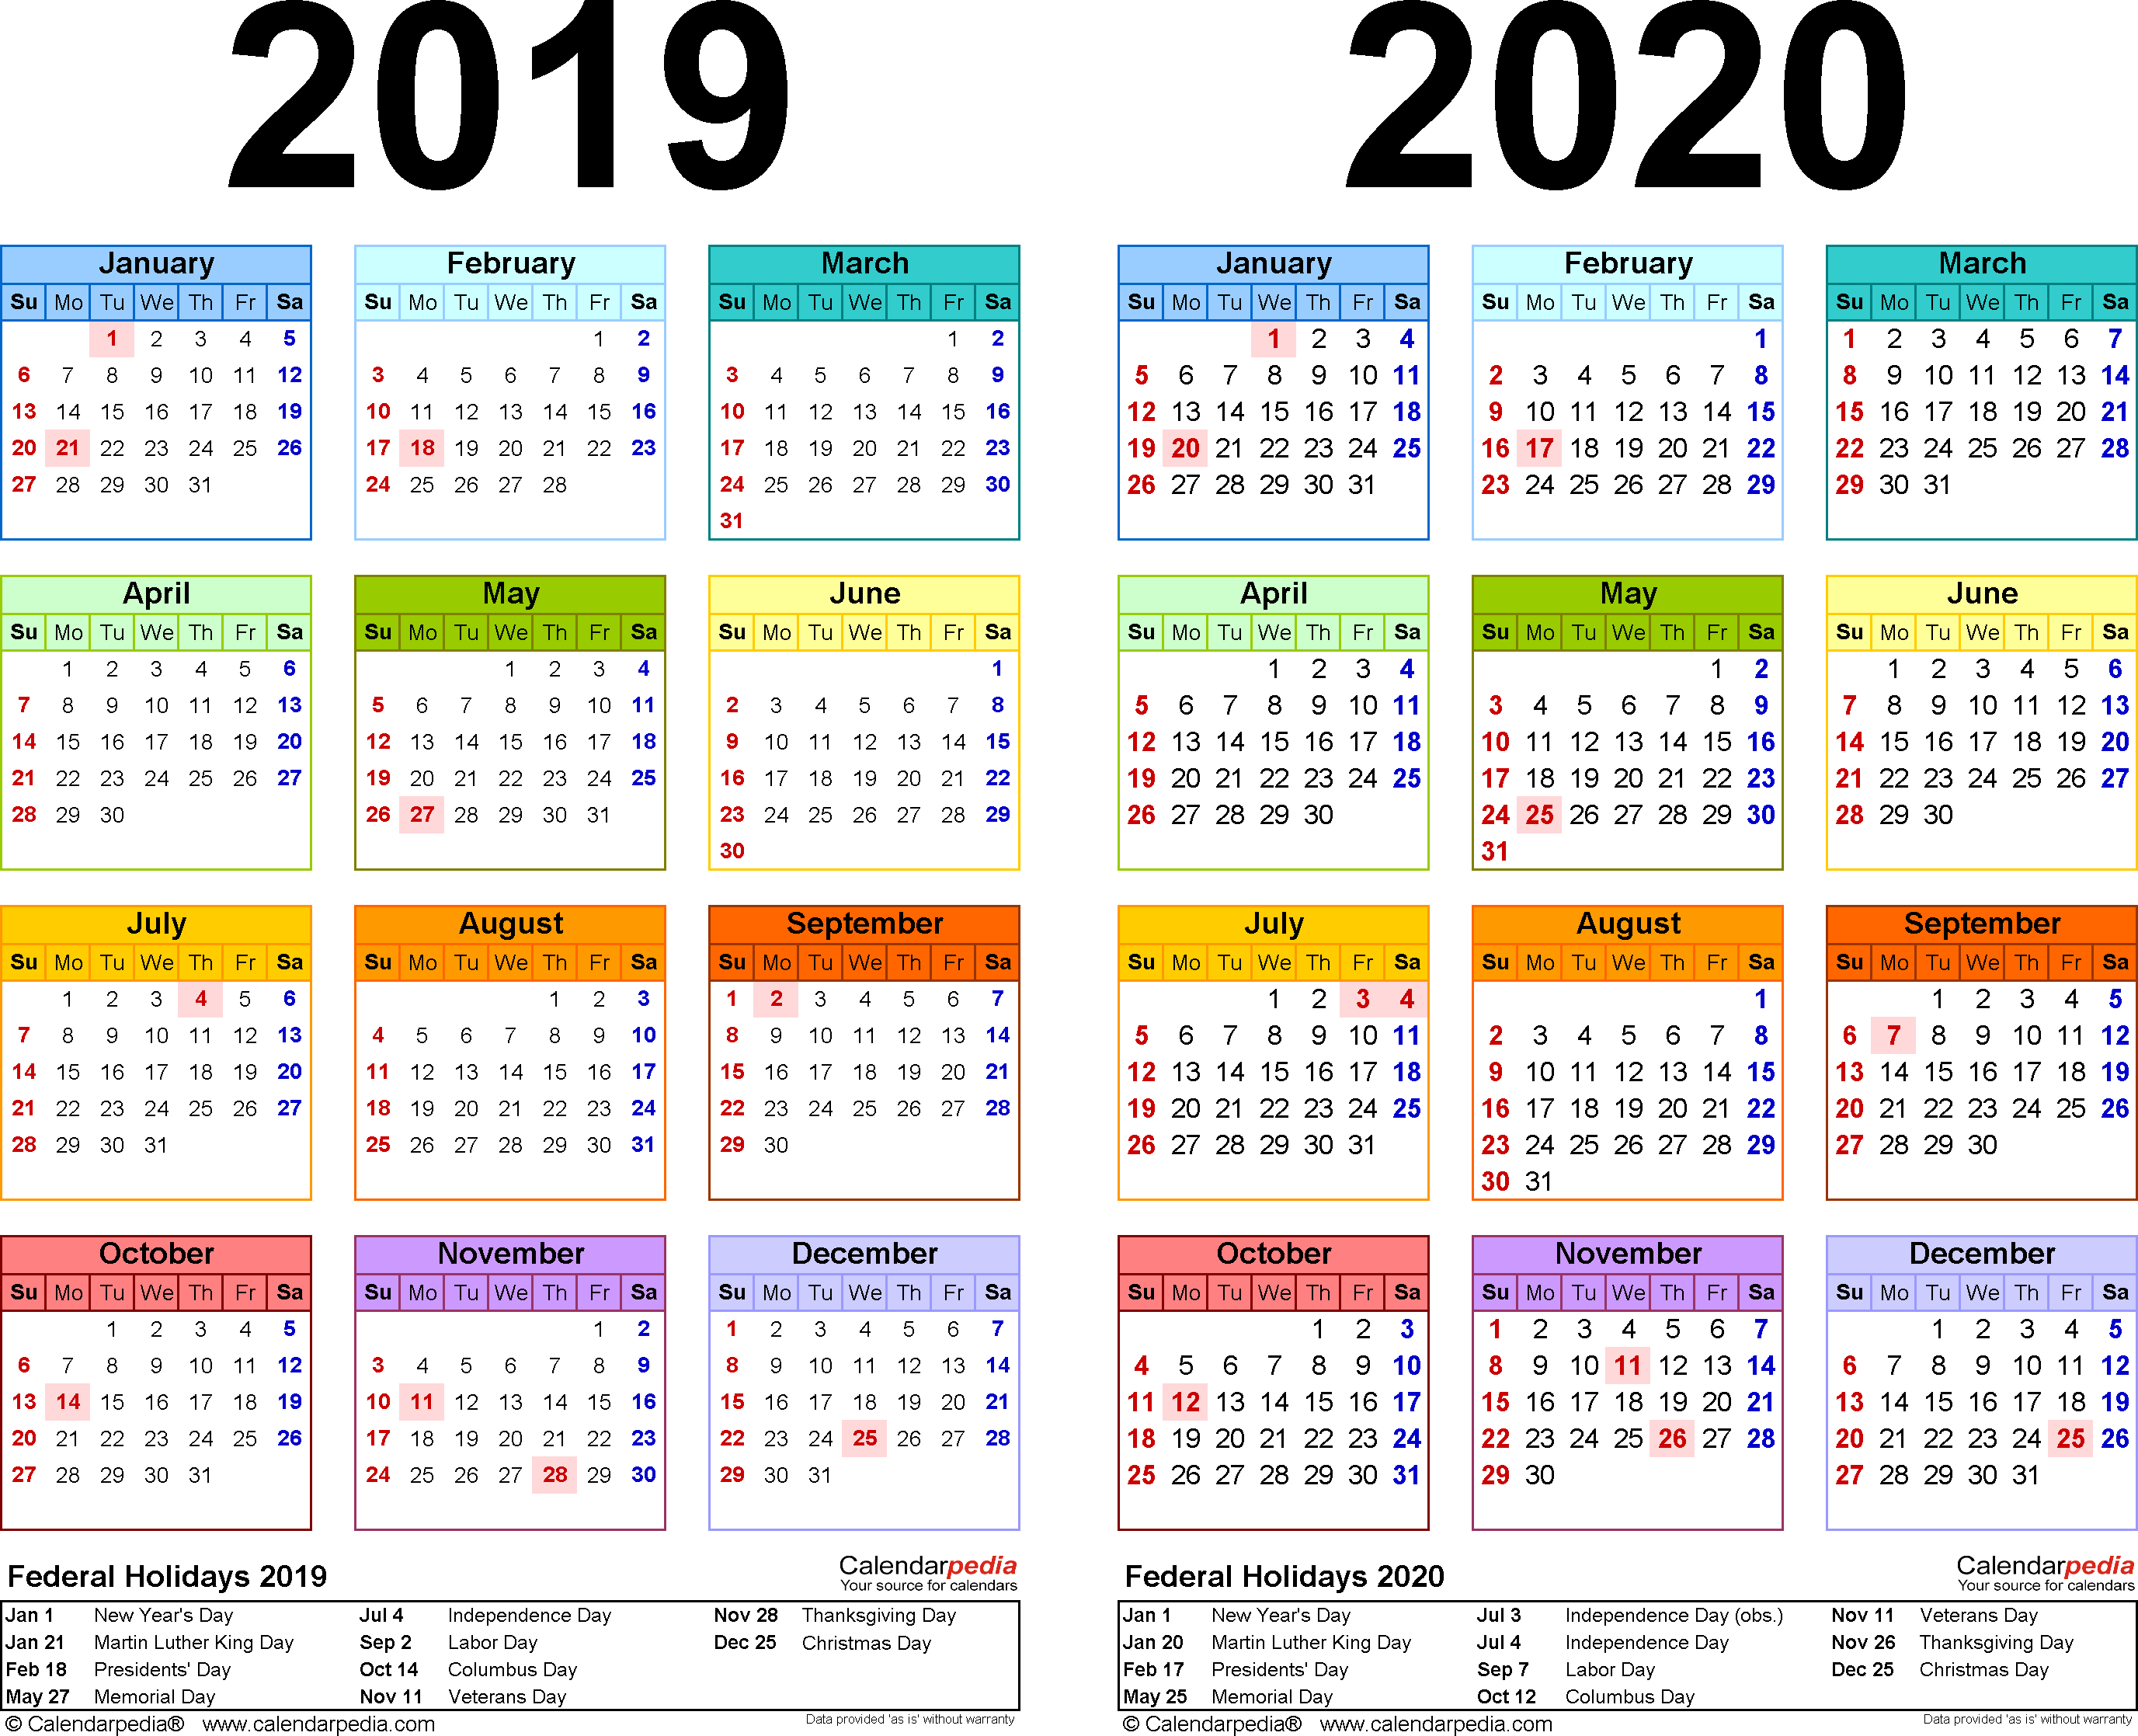 2019-2020 Calendar - Free Printable Two-Year Word Calendars throughout 2019-2020 Yearly Calendar Word Document